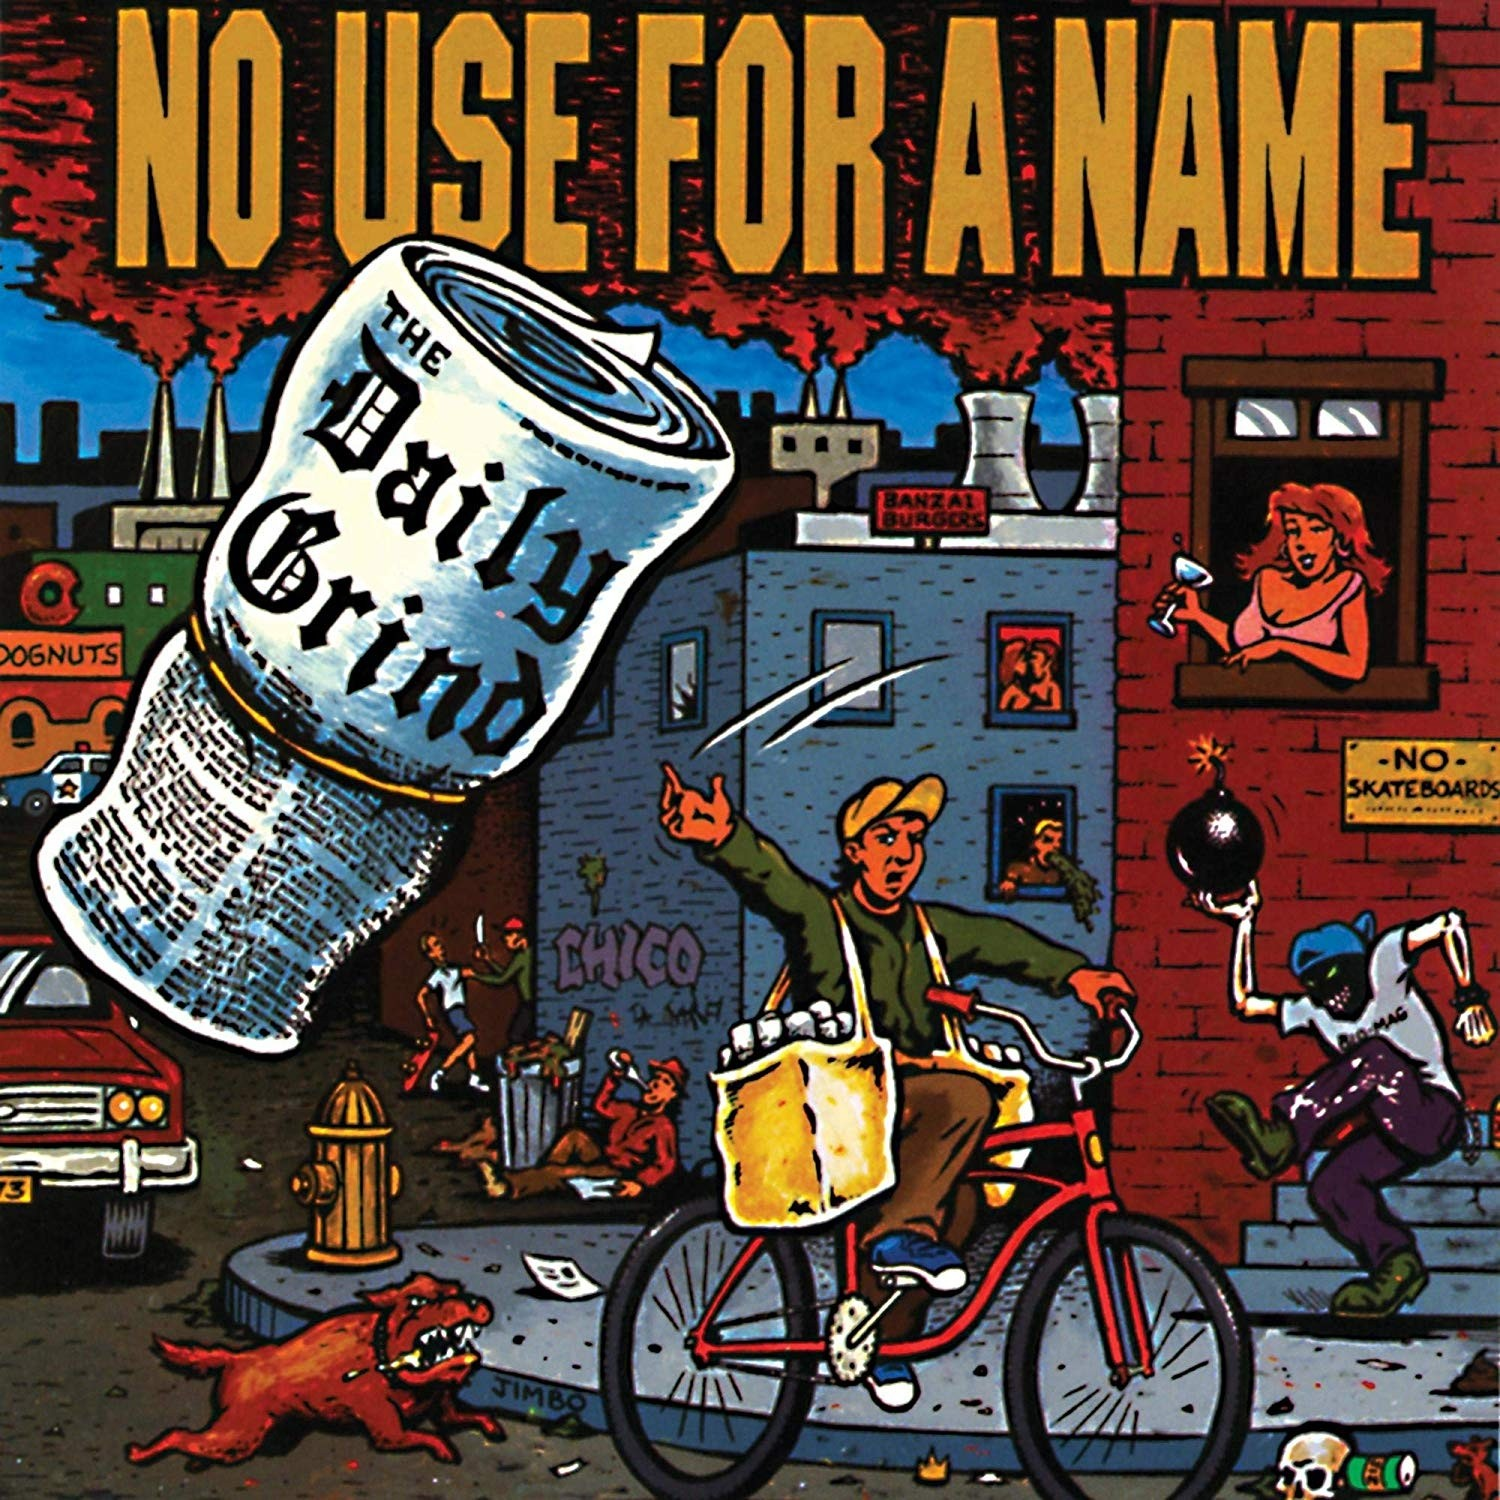 No Use for a Name - Daily Grind Vinyl LP